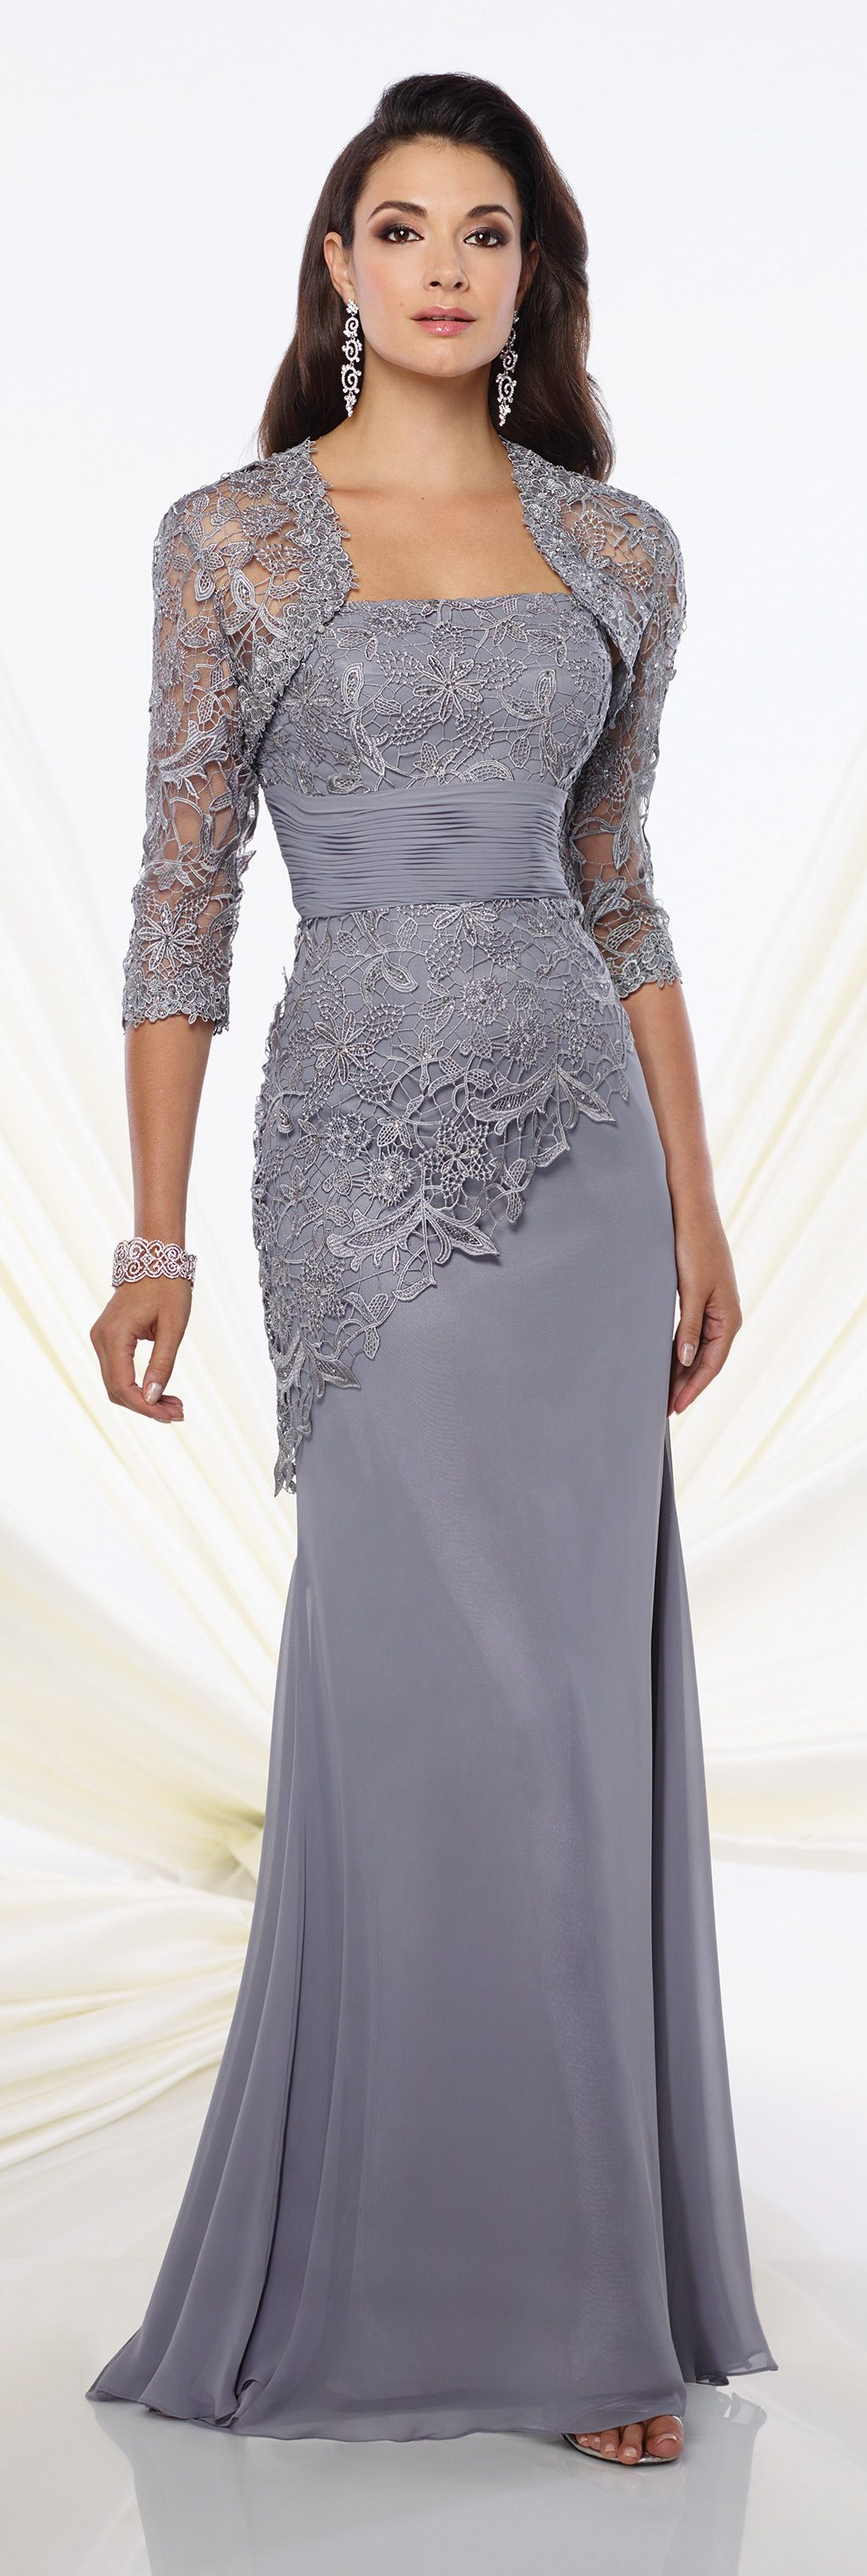 Taffeta and Tulle Trumpet Dress Montage | Formal evening gowns ...